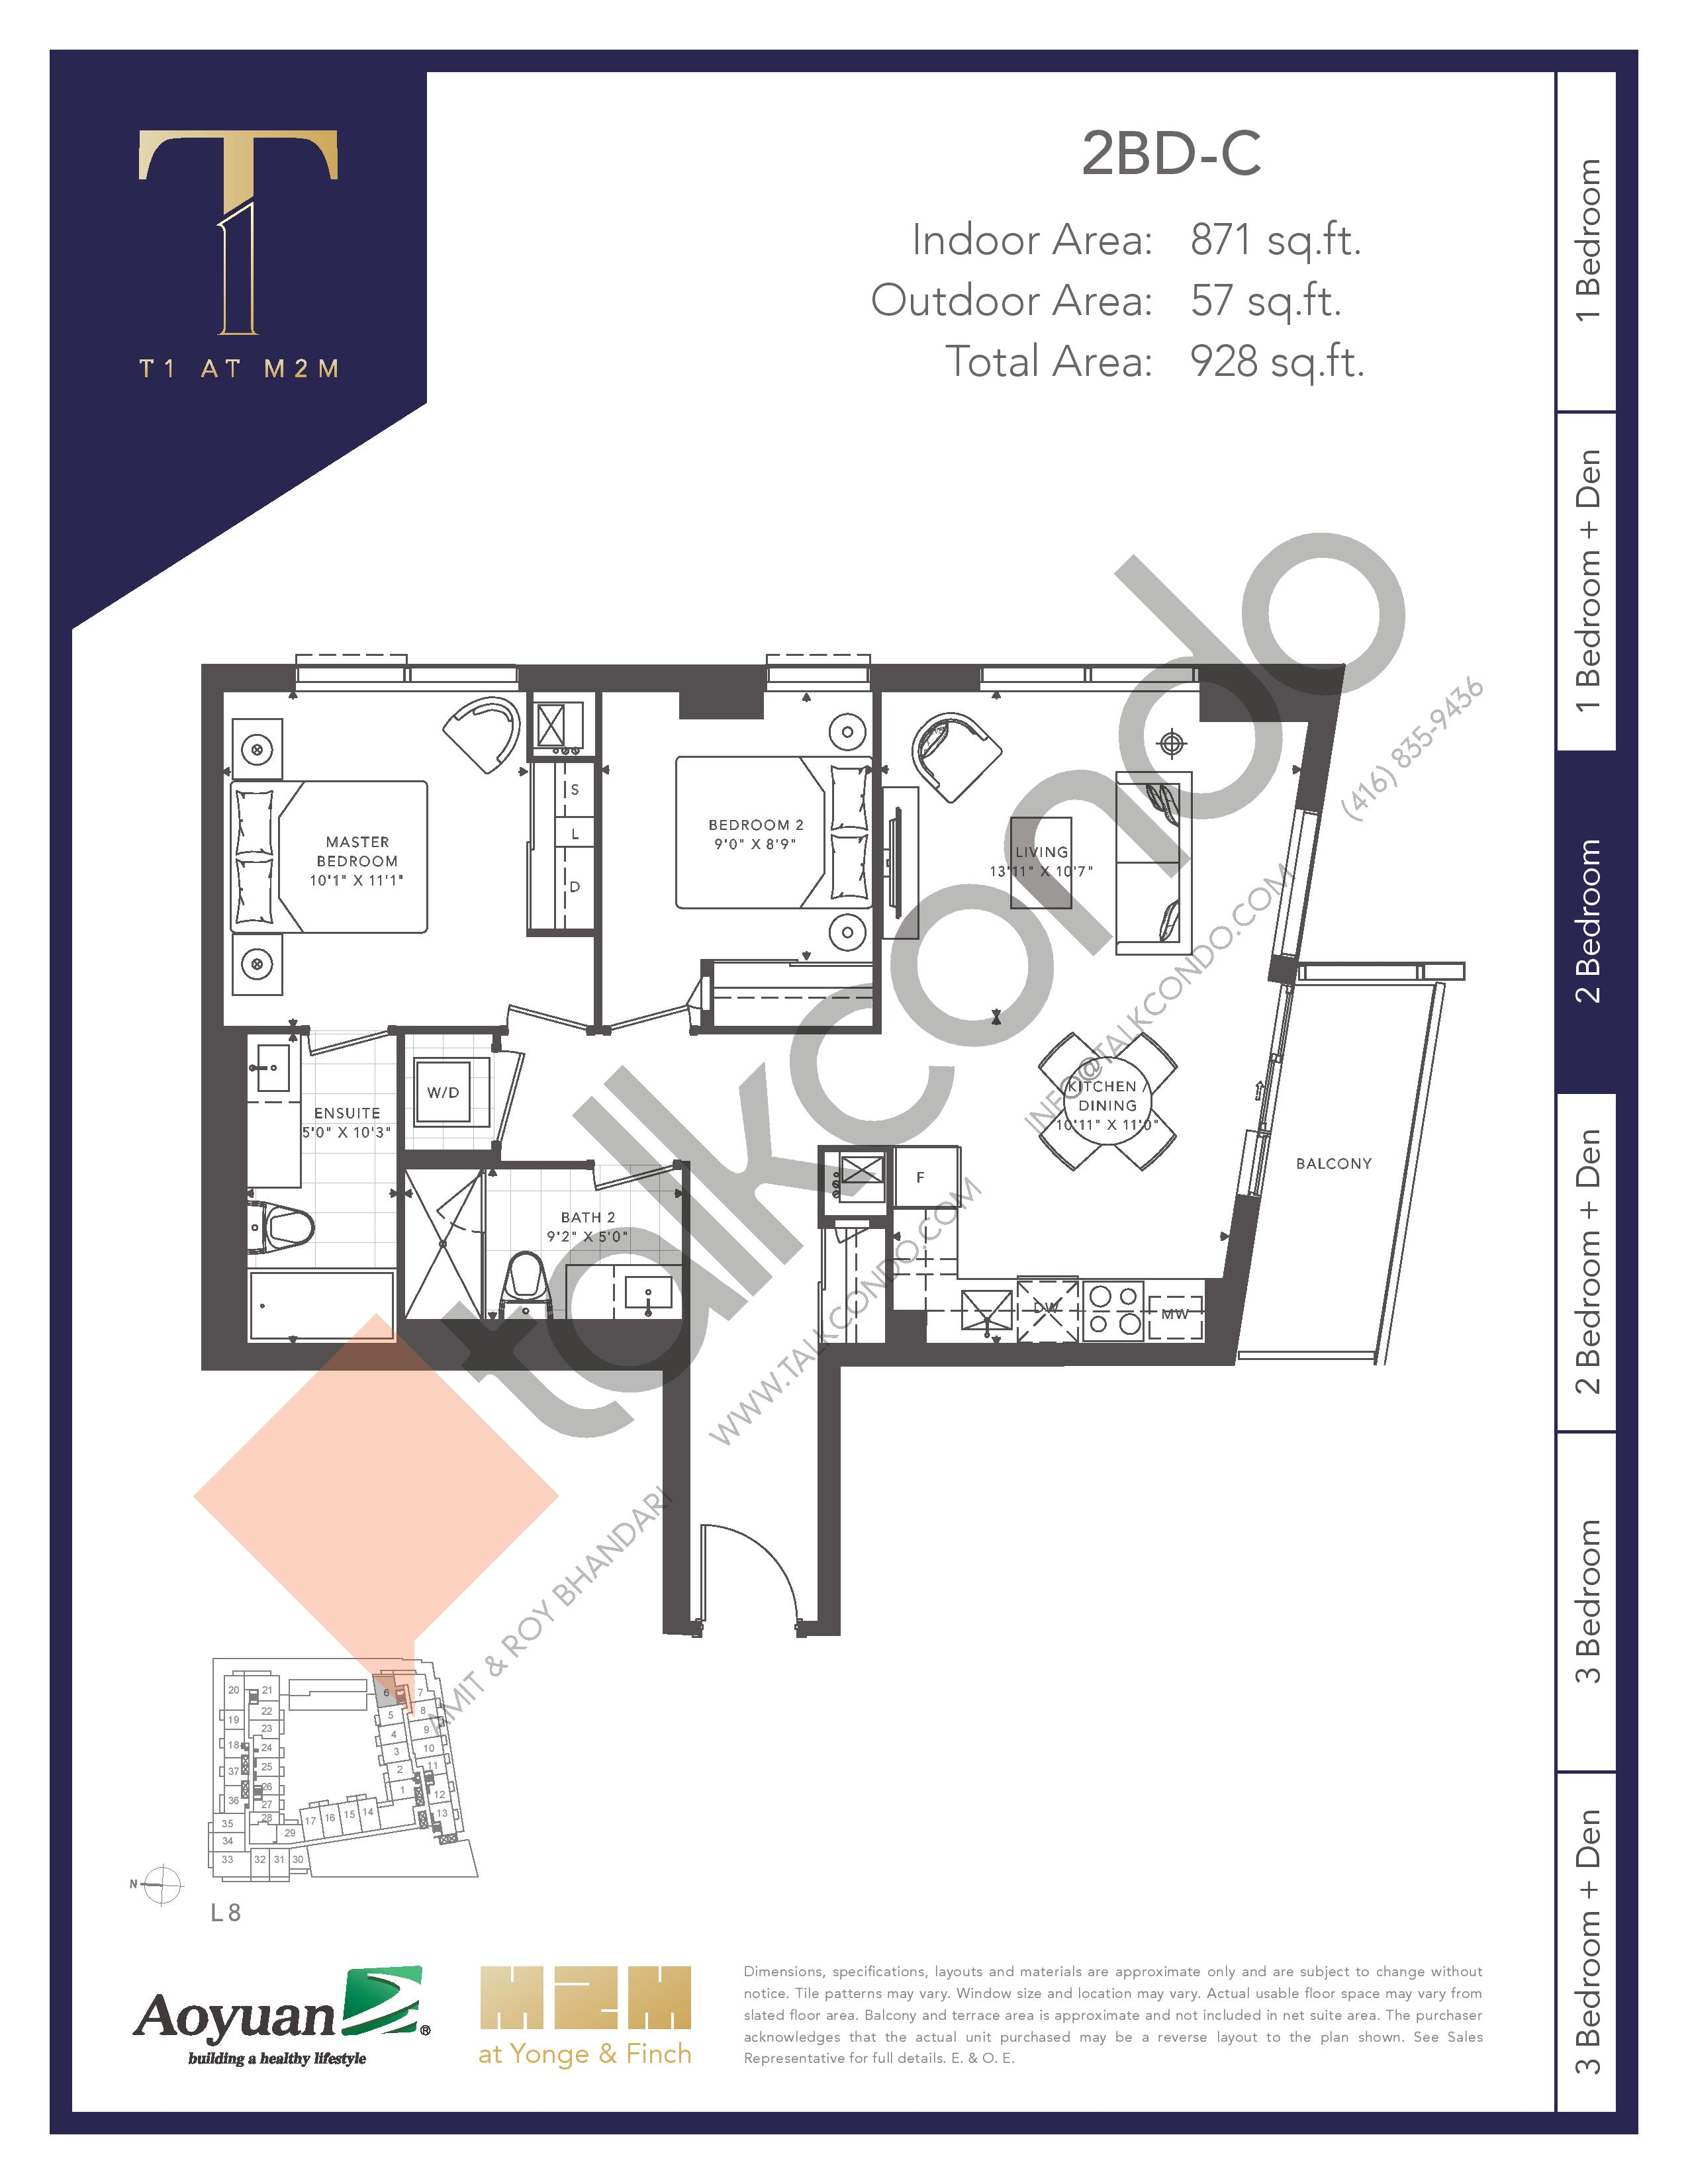 2BD-C Floor Plan at T1 at M2M Condos - 871 sq.ft